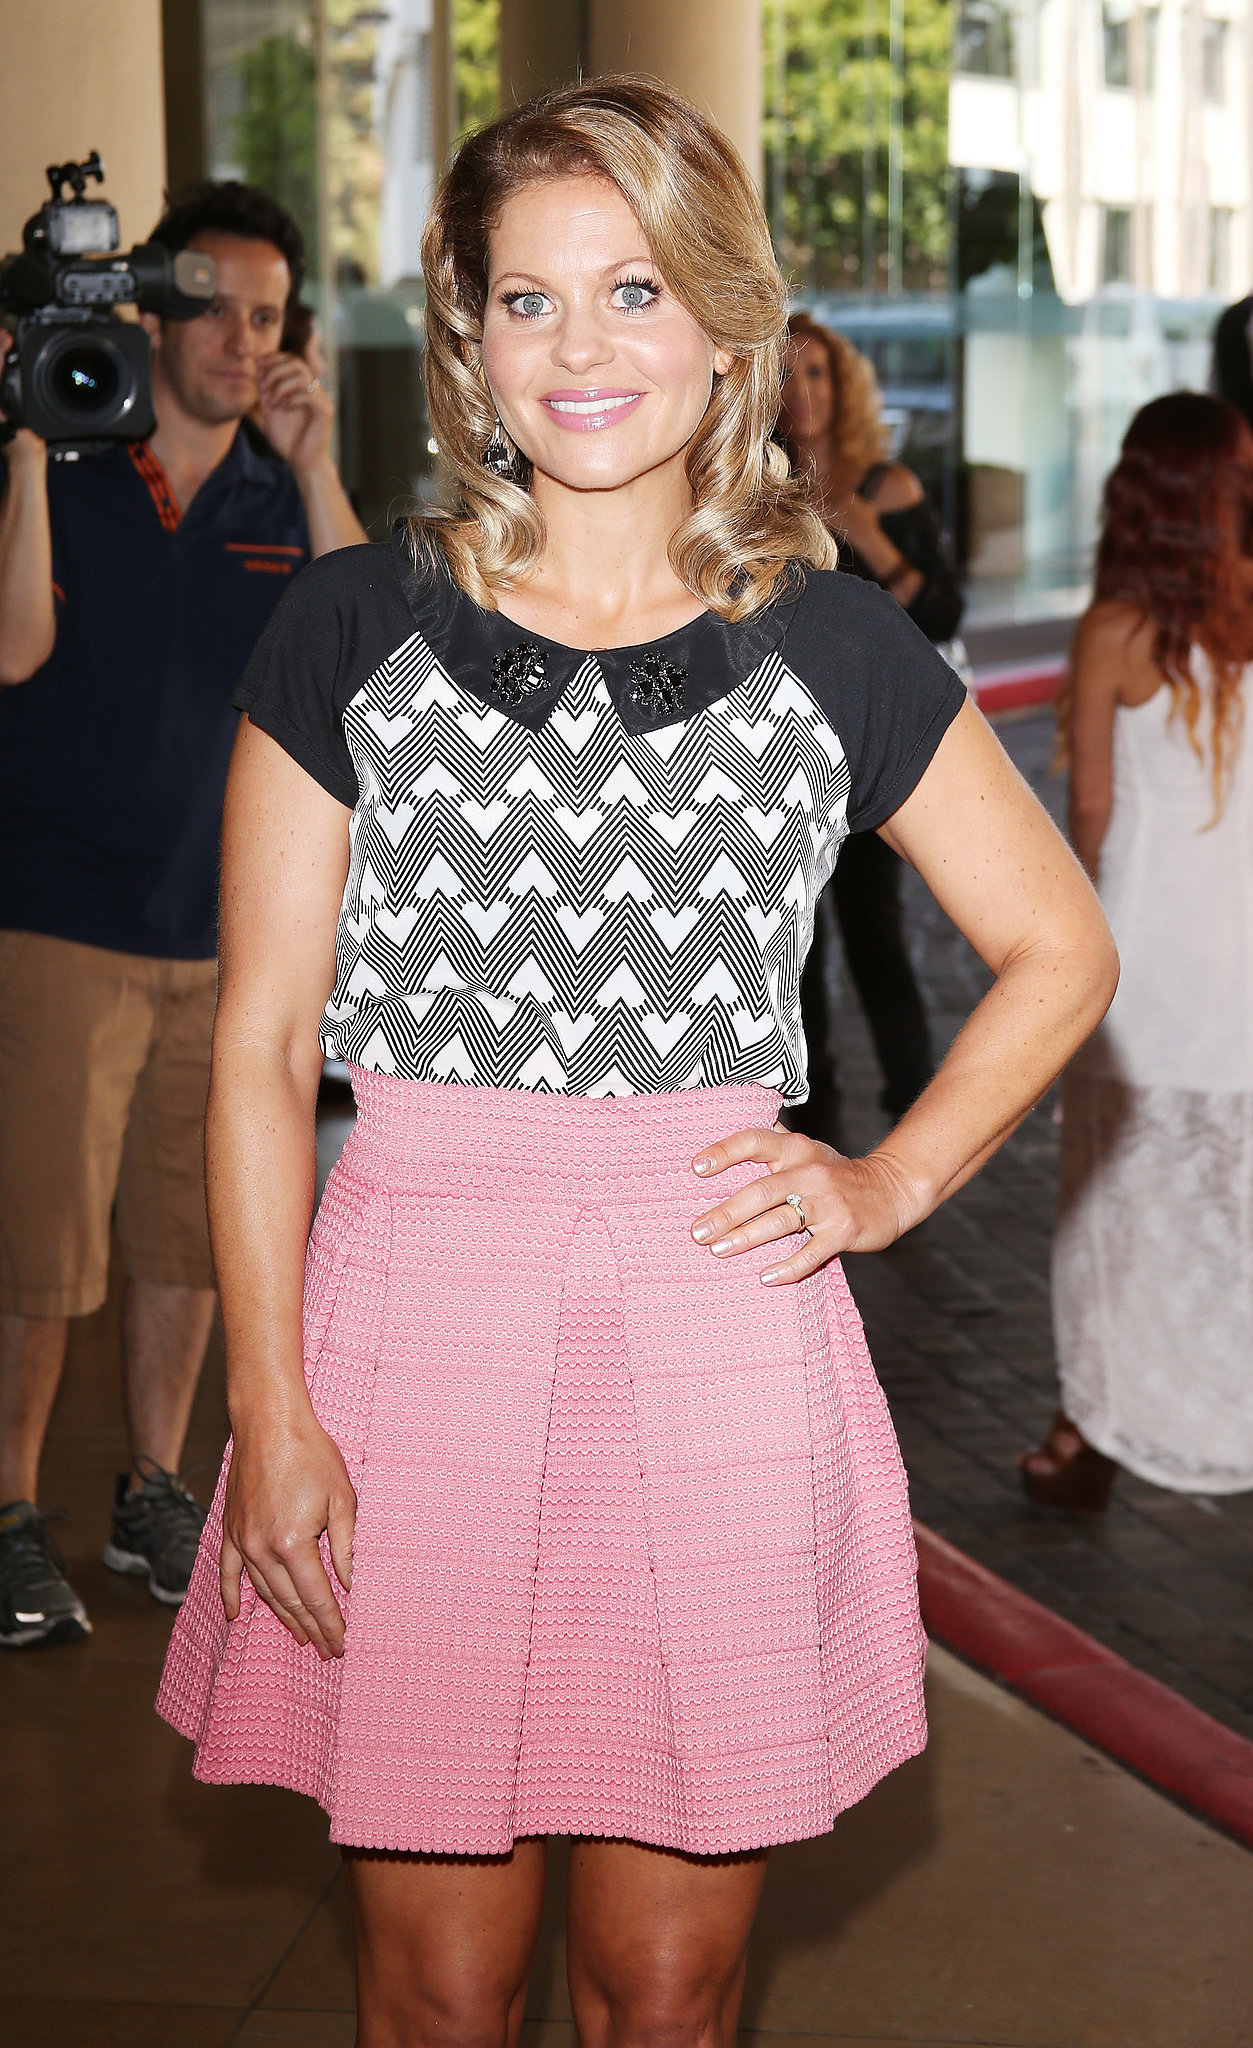 Former Full House star Candace Cameron Bure was in attendance at the event in LA.